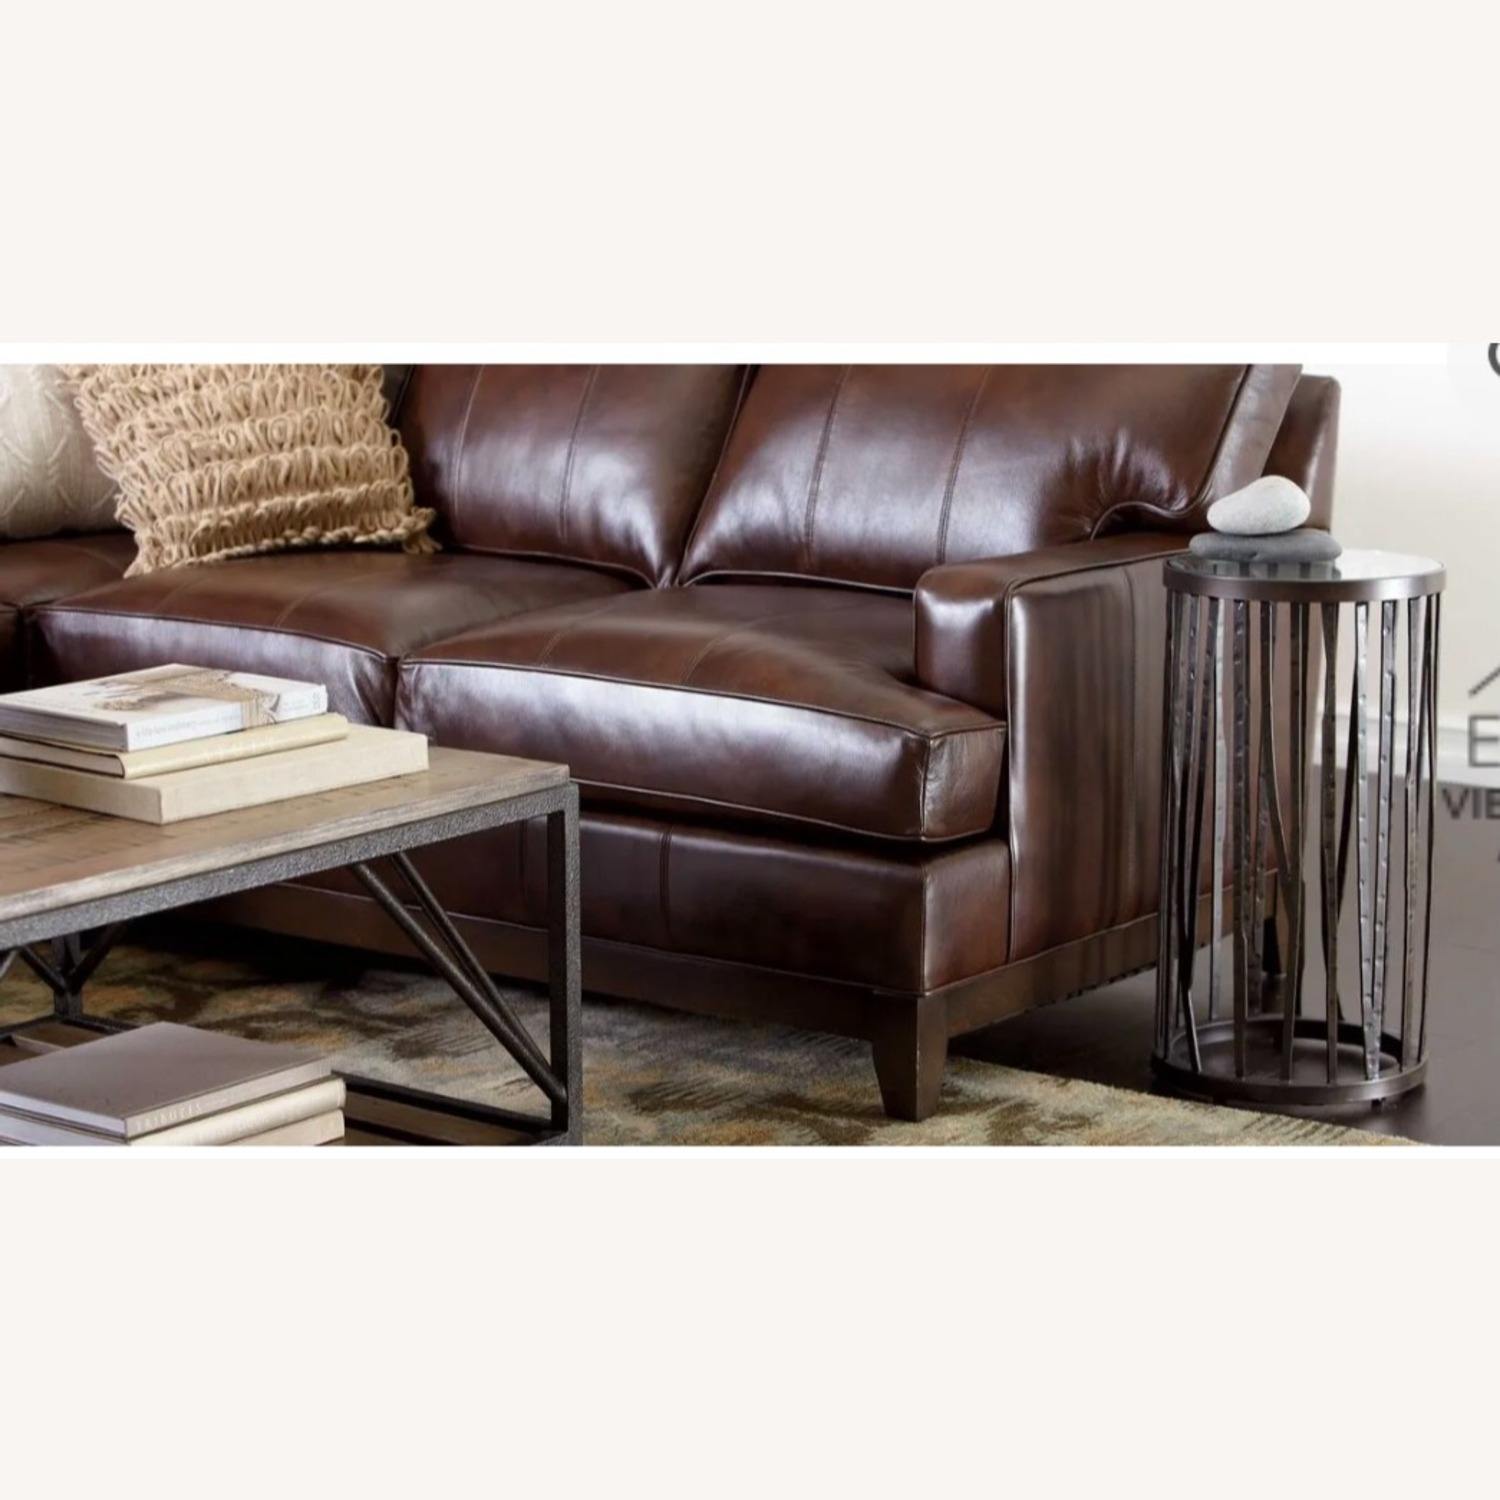 Ethan Allen Accent or Side Table - image-5